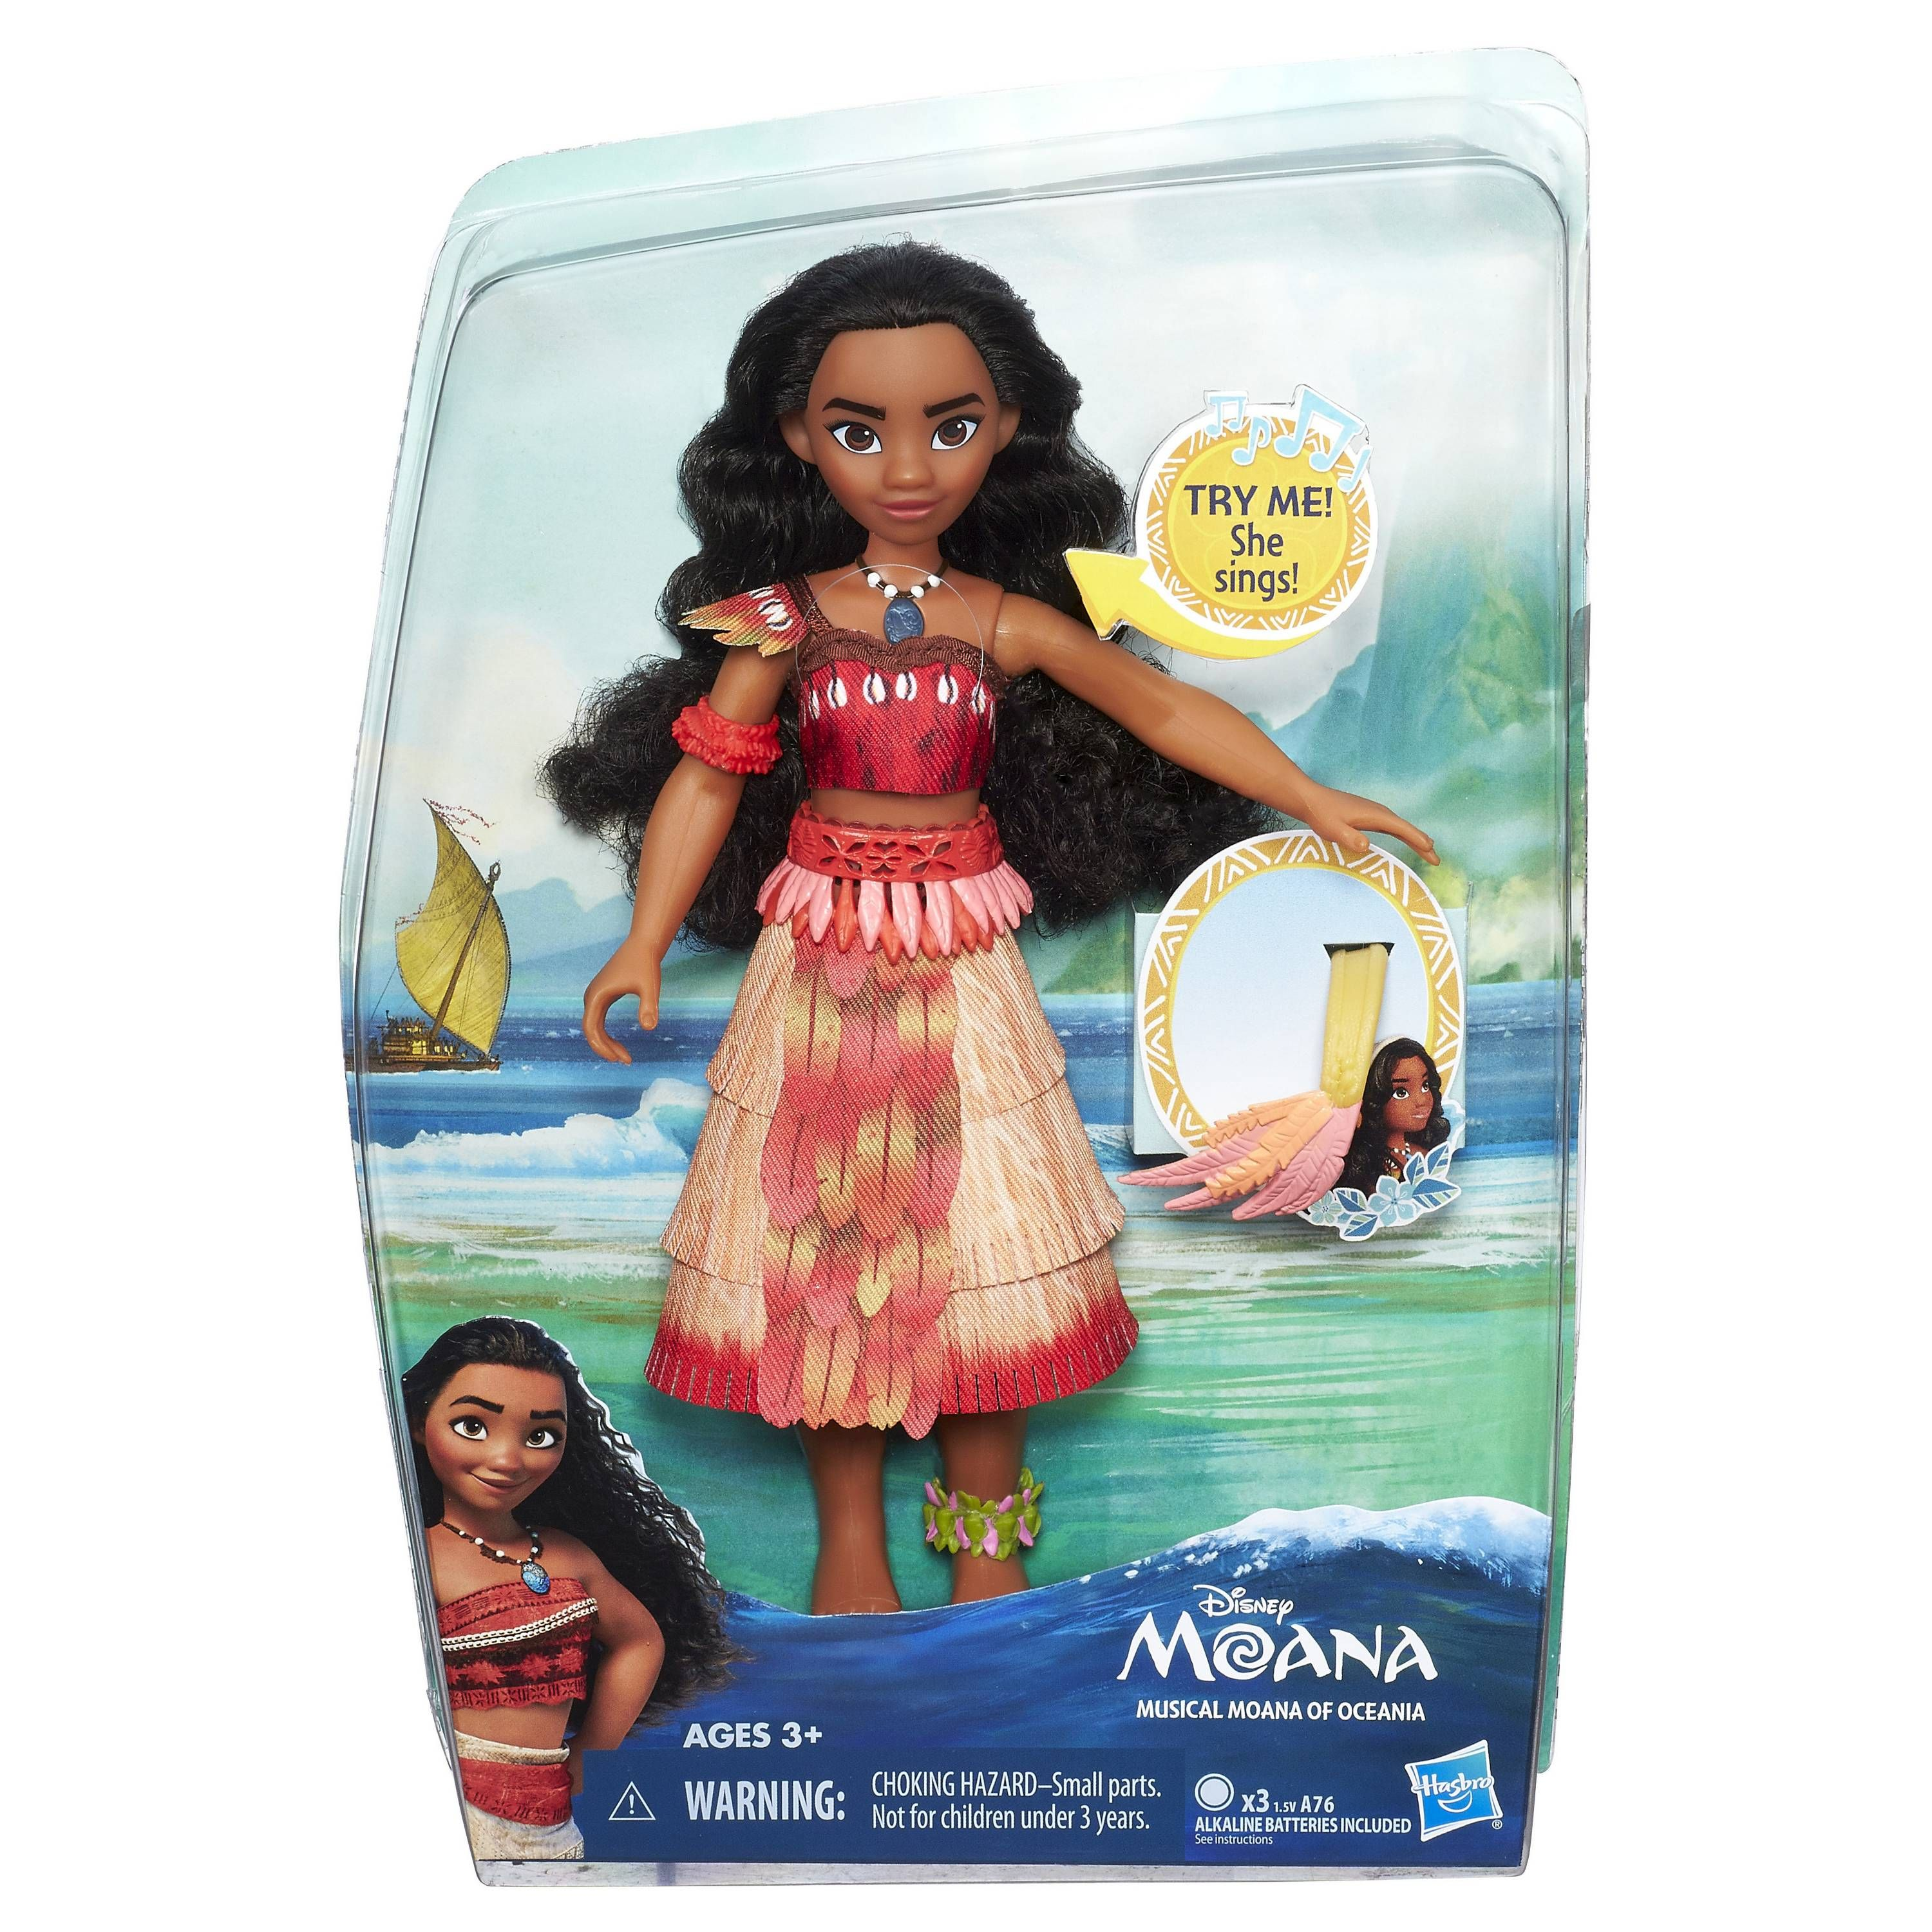 16cm Movie Moana Princess Adventure Collection Action Figure Doll Toy Gifts PVC